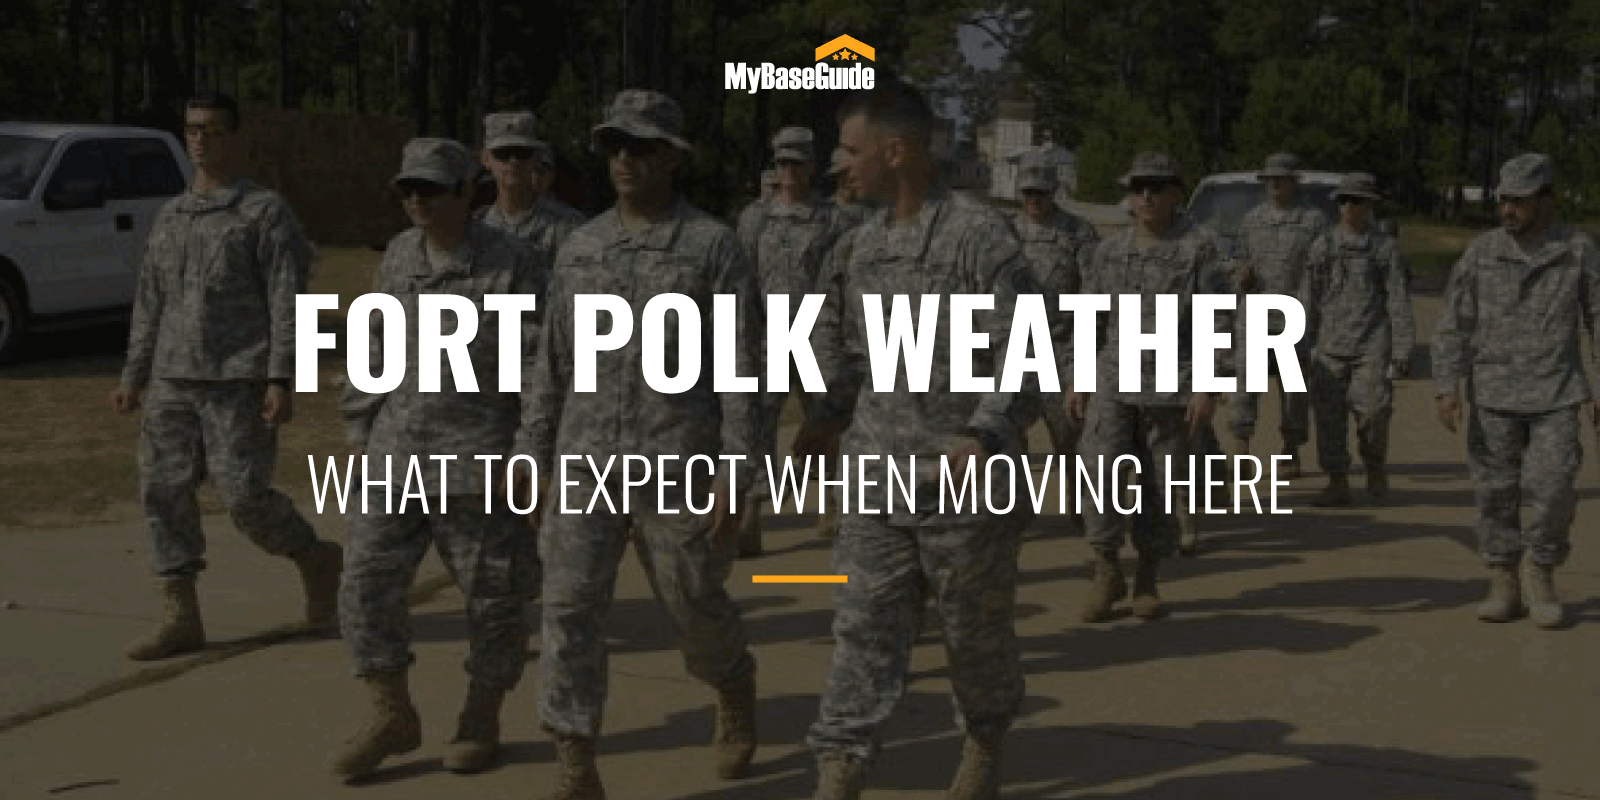 Fort Polk Weather: What To Expect When Moving Here